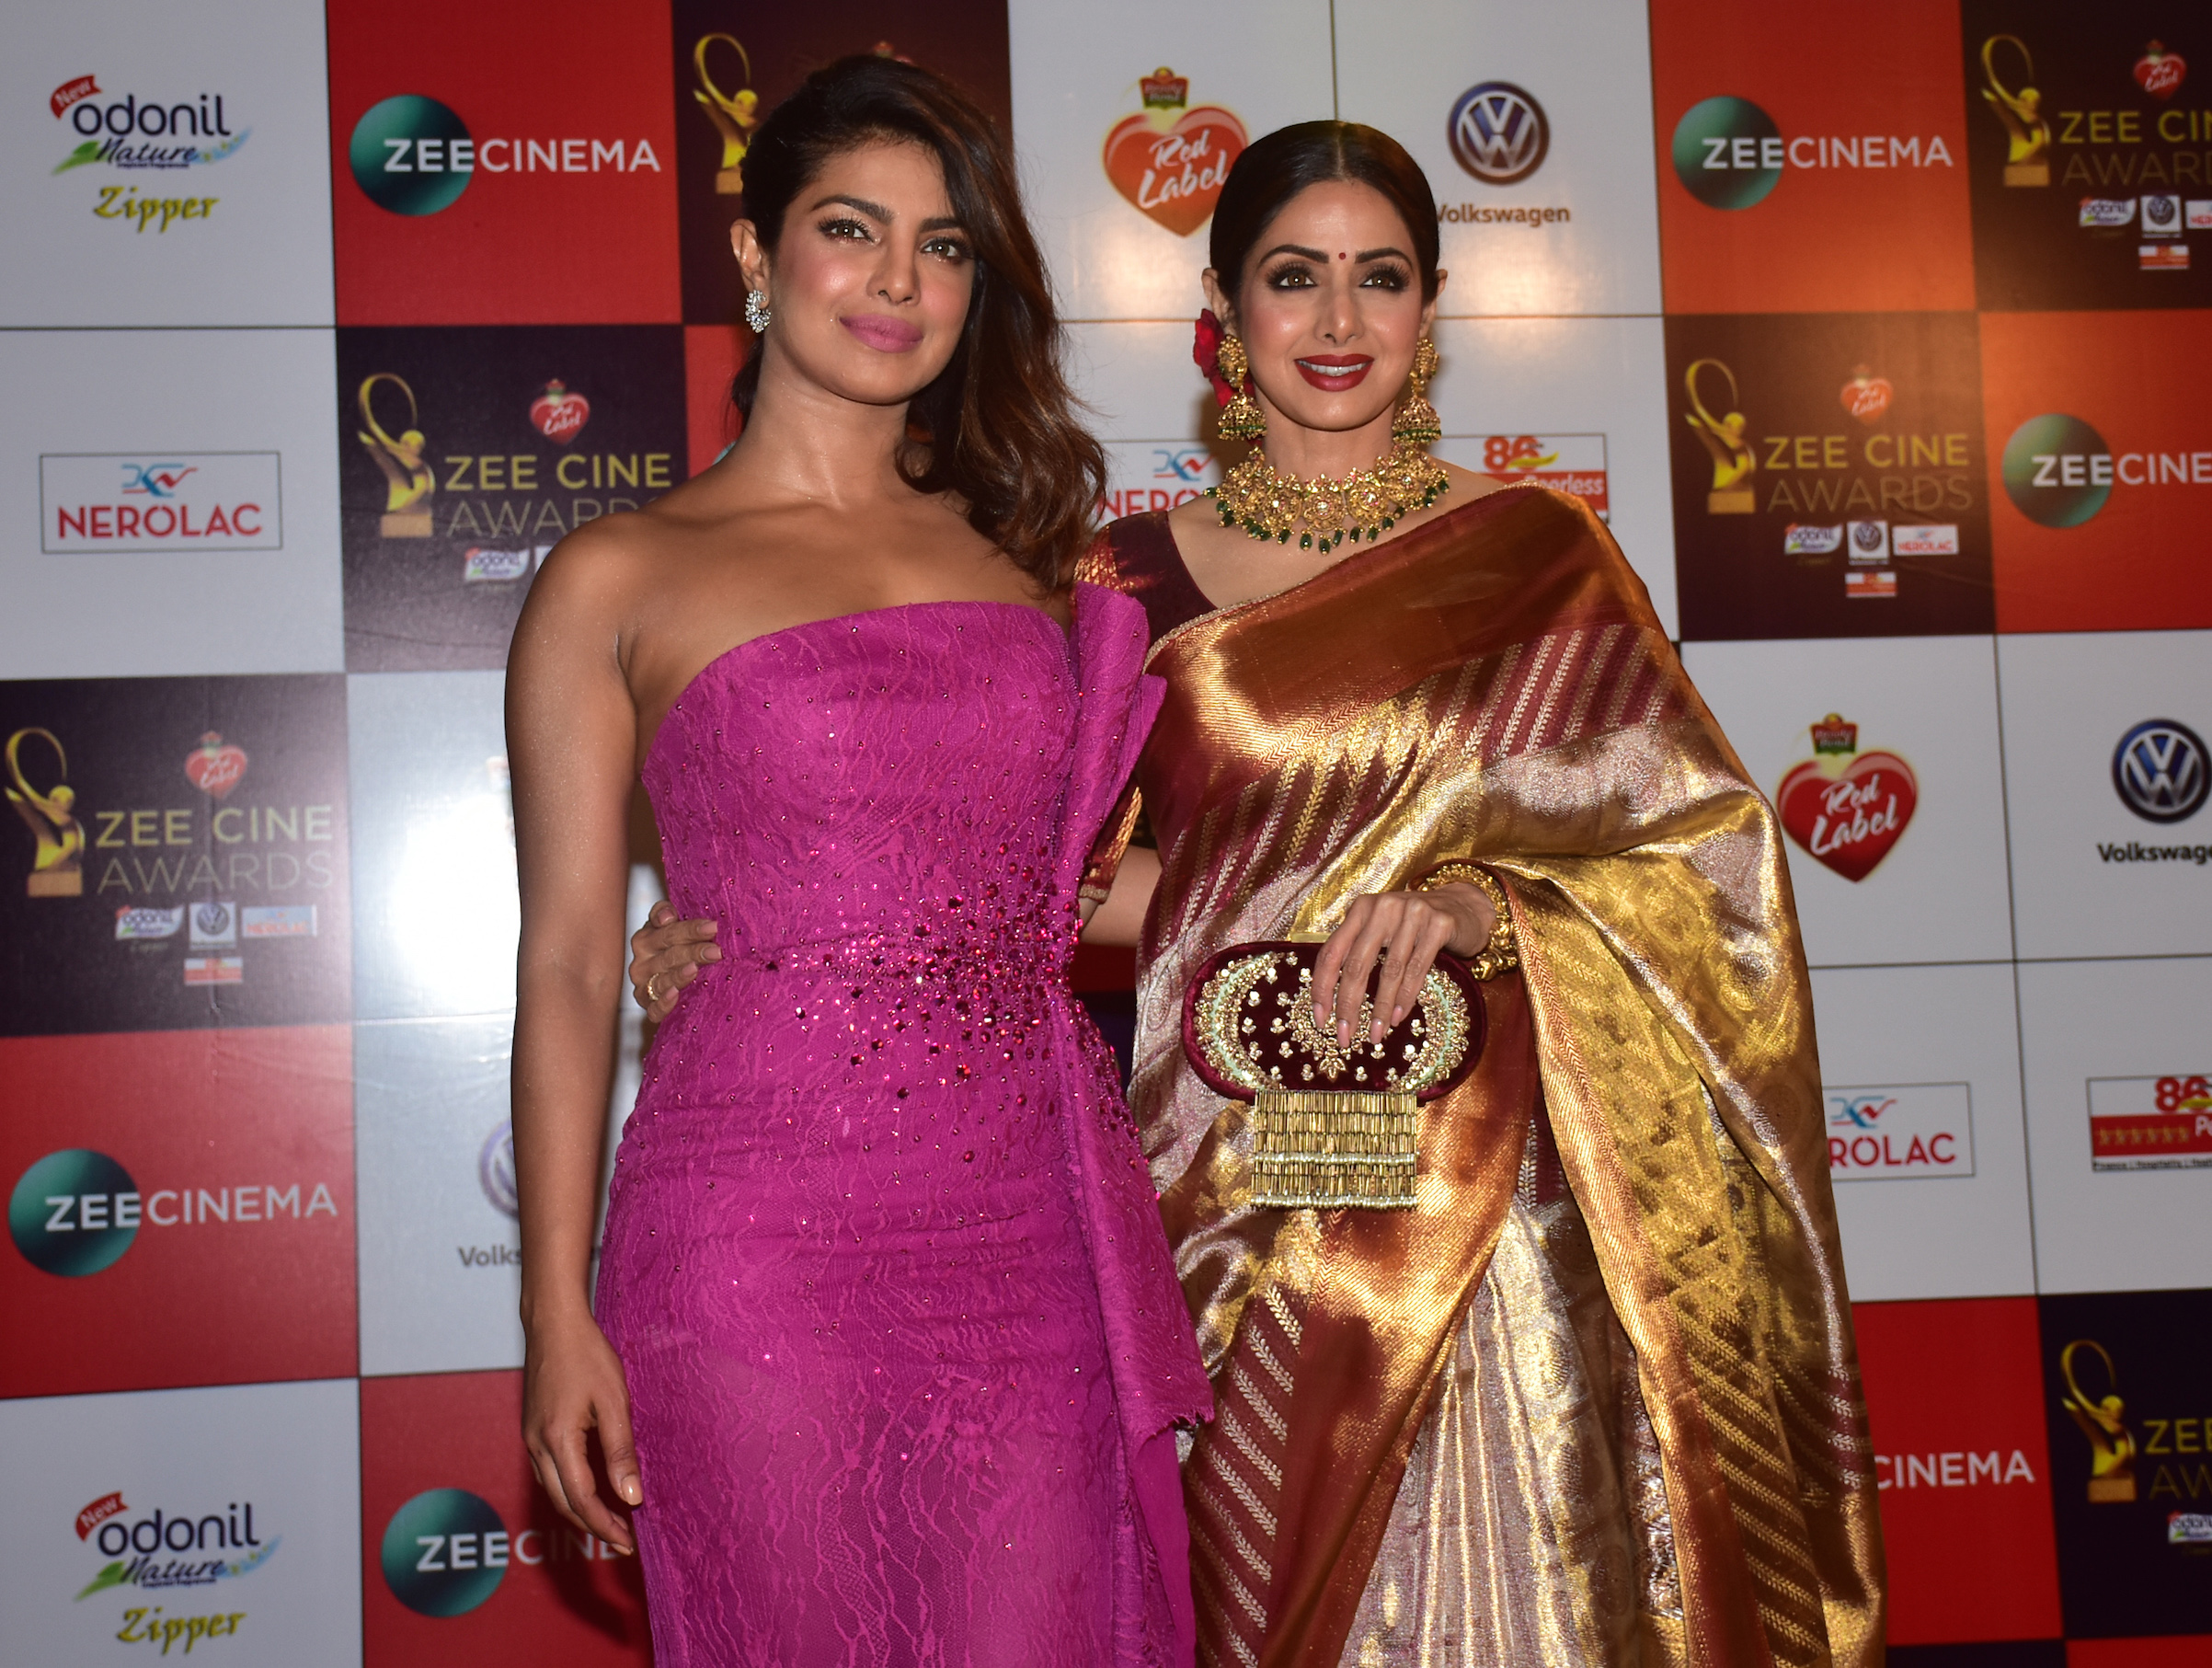 Priyanka Chopra and Sridevi at the Red carpet event of Zee Cine Awards on Dec. 19, 2017, in Mumbai